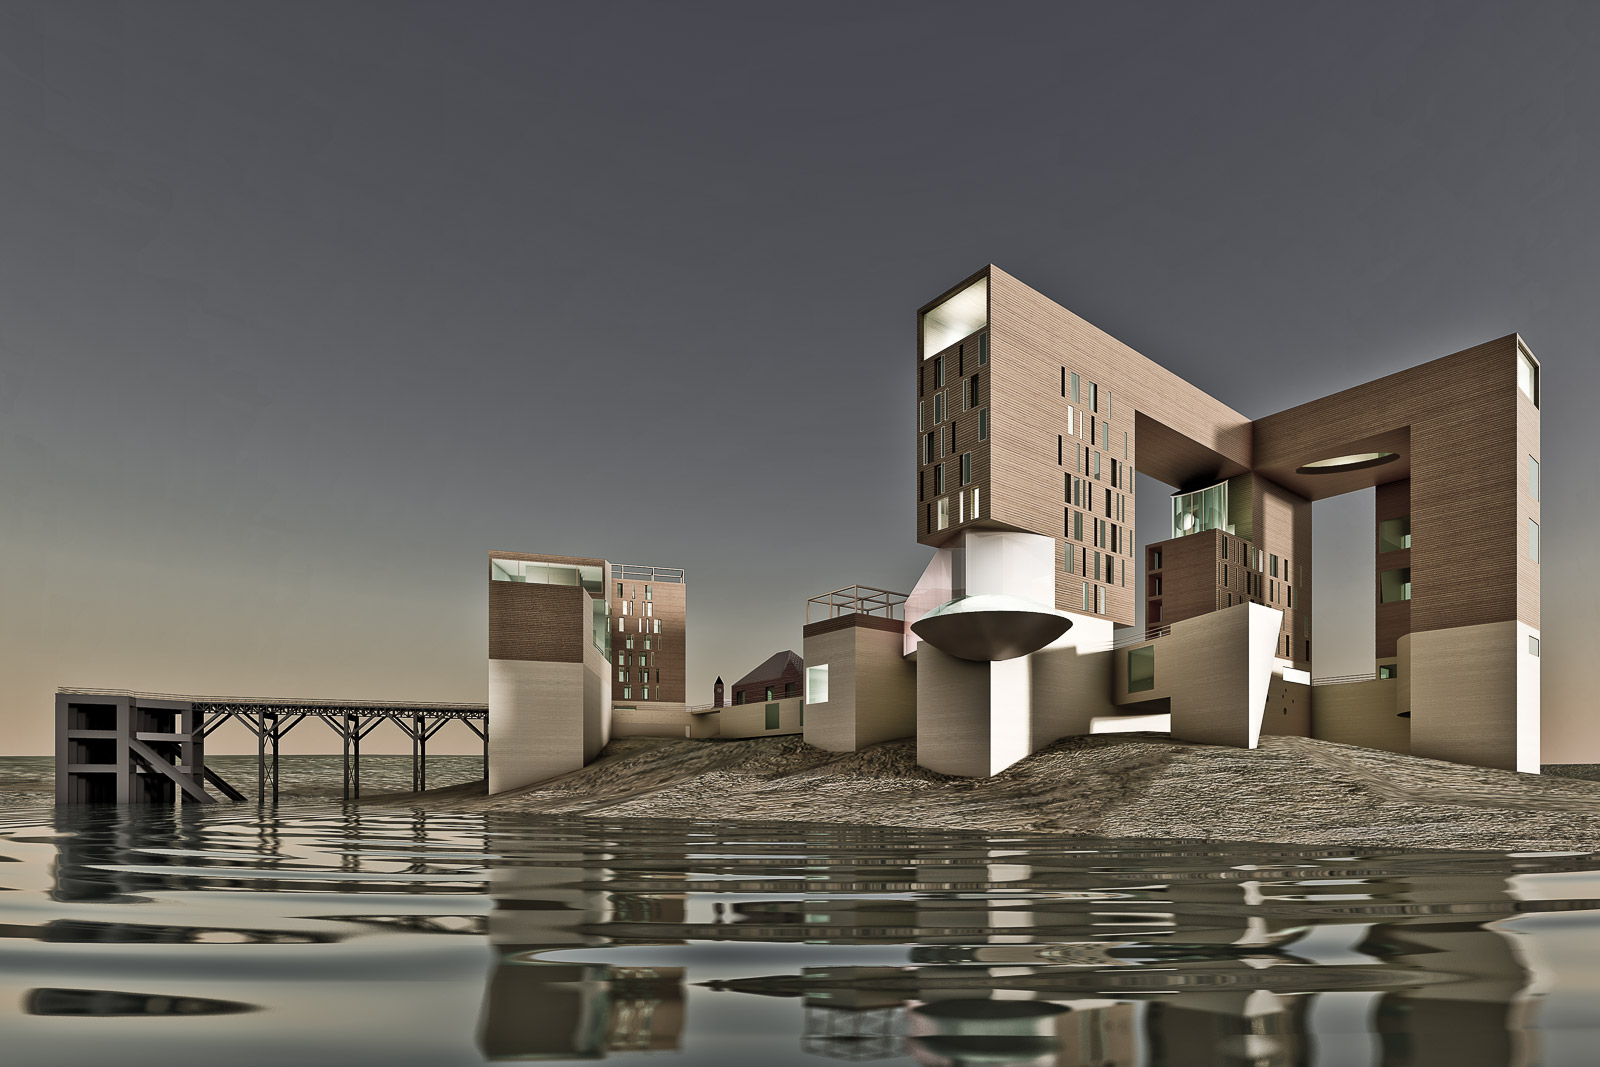 Antonino Cardillo, Isola di Birnbeck, Weston-Super-Mare, RIBA, Urban Splash, 2007. IGC: Antonino Cardillo.